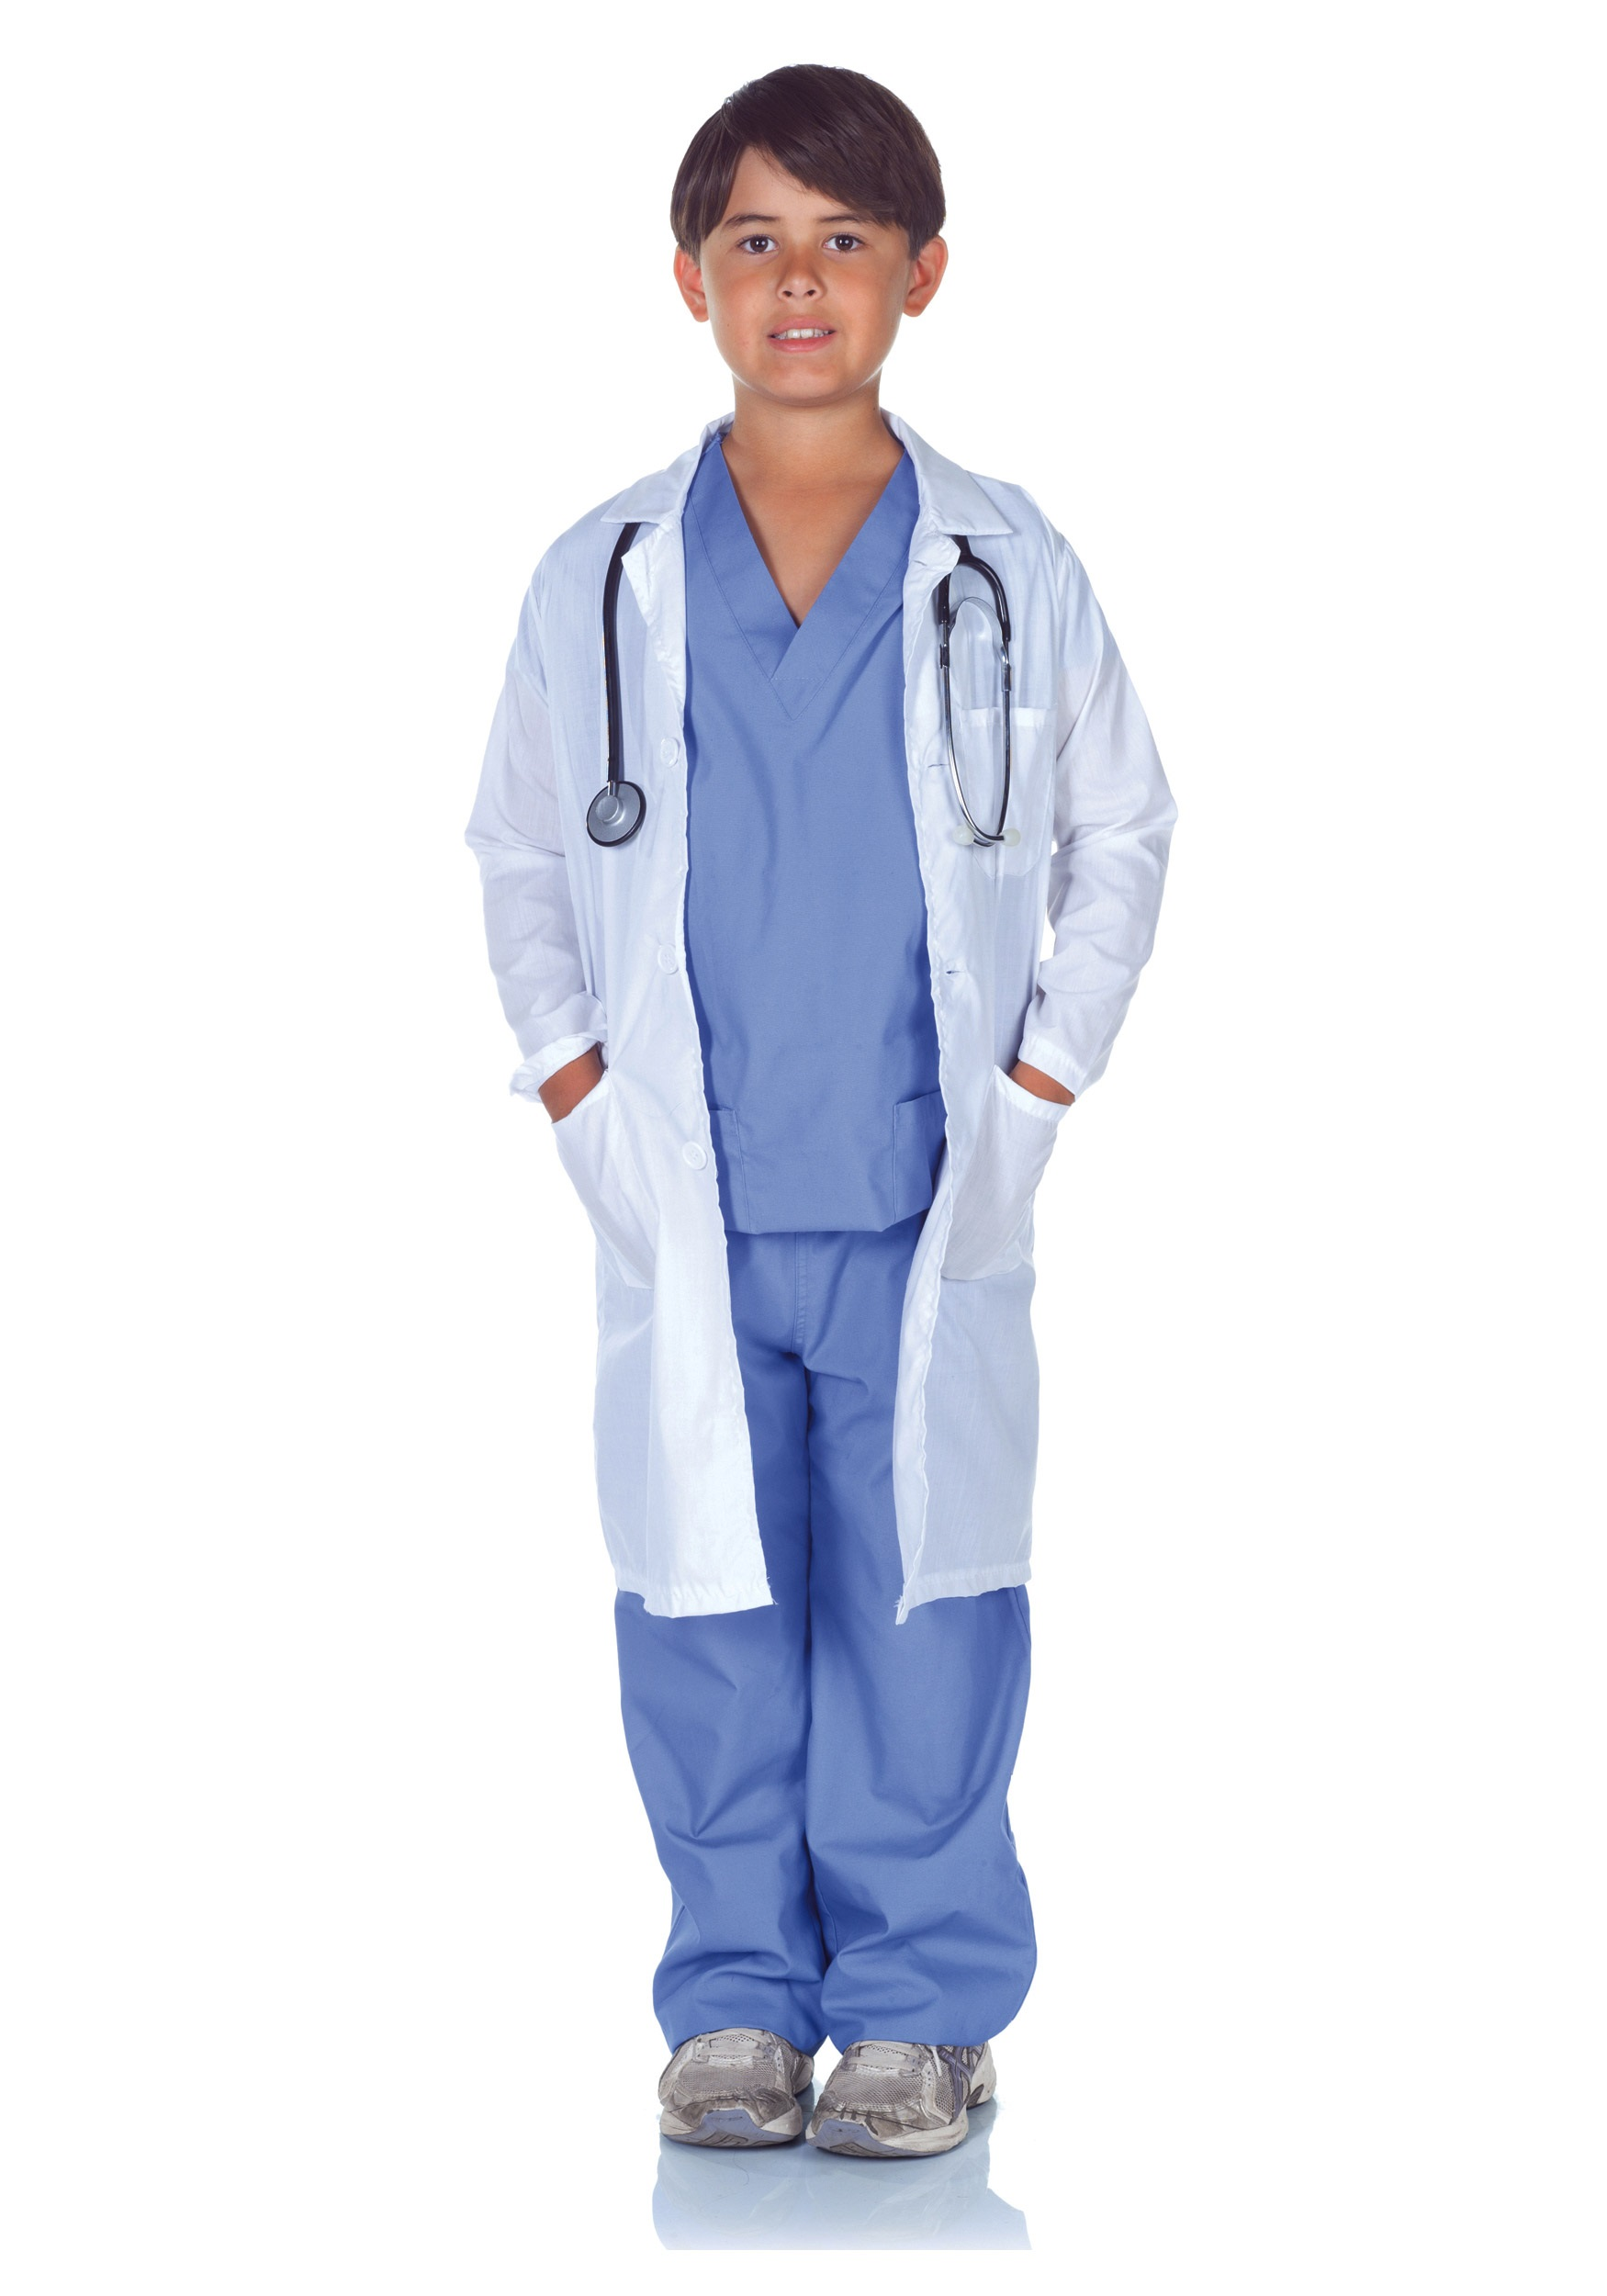 ada5a12f72d Doctor Scrubs with Lab Coat Boys' Child Halloween Costume - Walmart.com